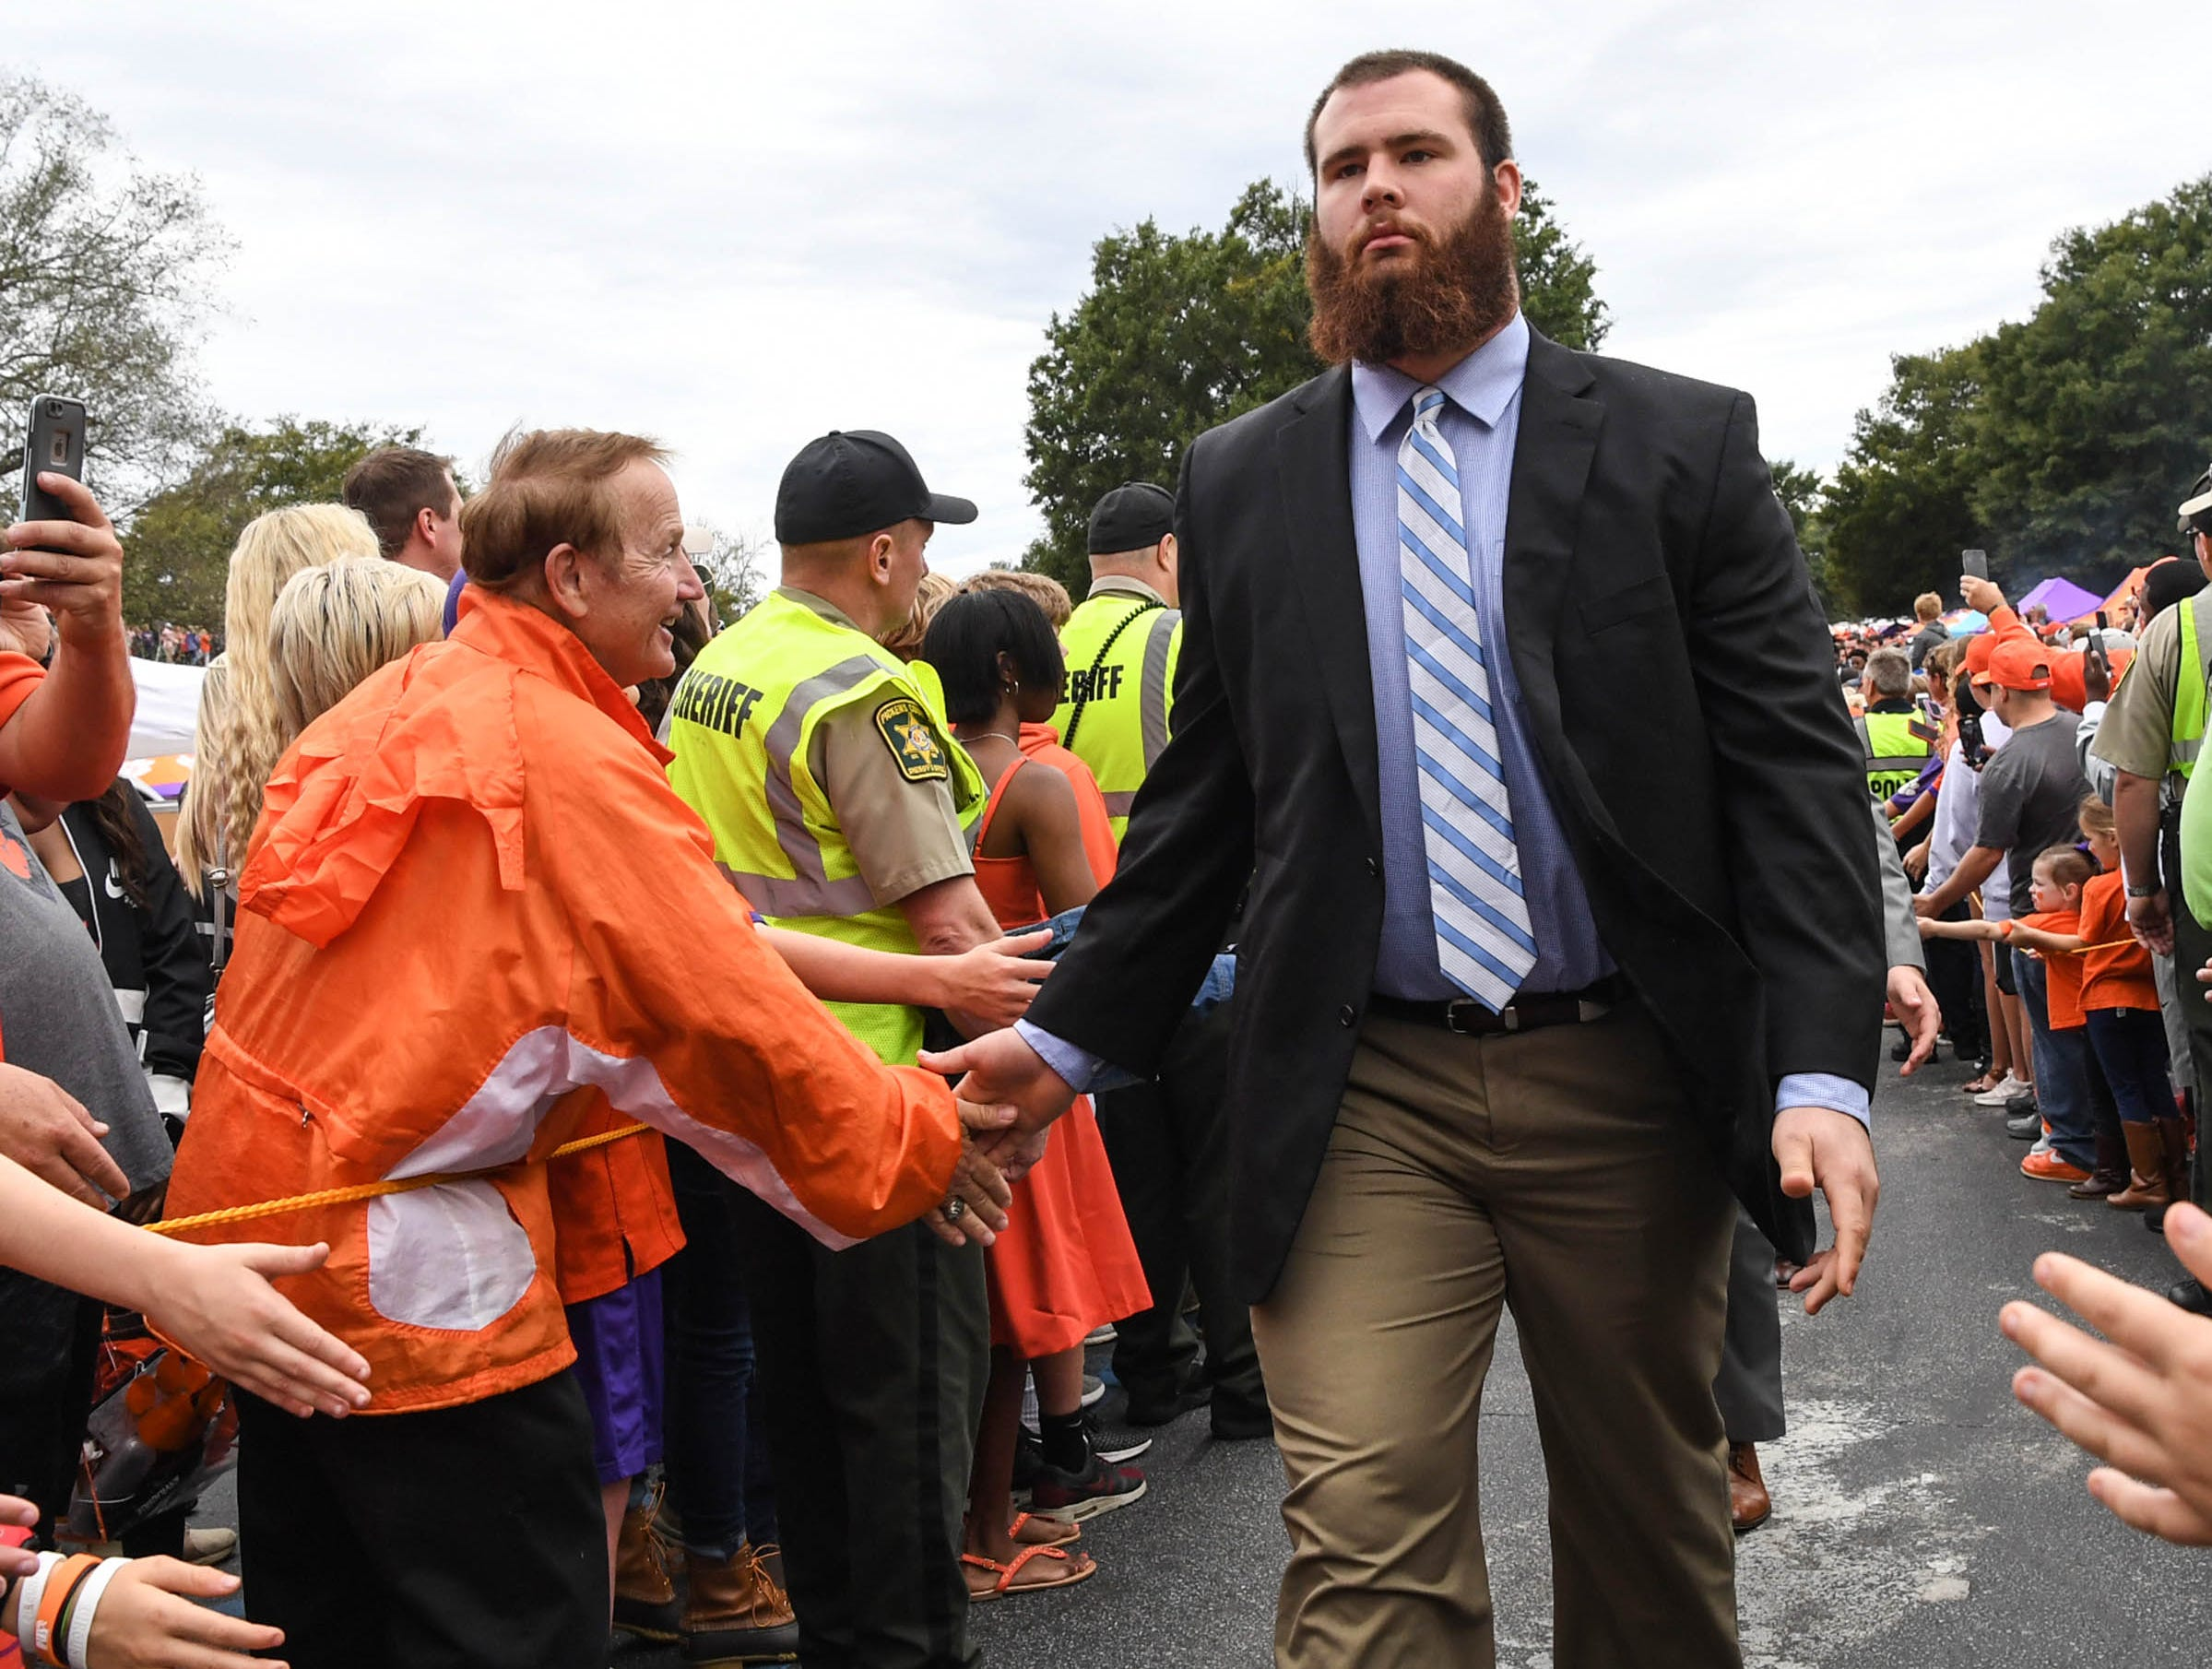 Clemson offensive lineman Sean Pollard (76) walks by fans during Tiger Walk before the game in Memorial Stadium on Saturday, October 20, 2018.